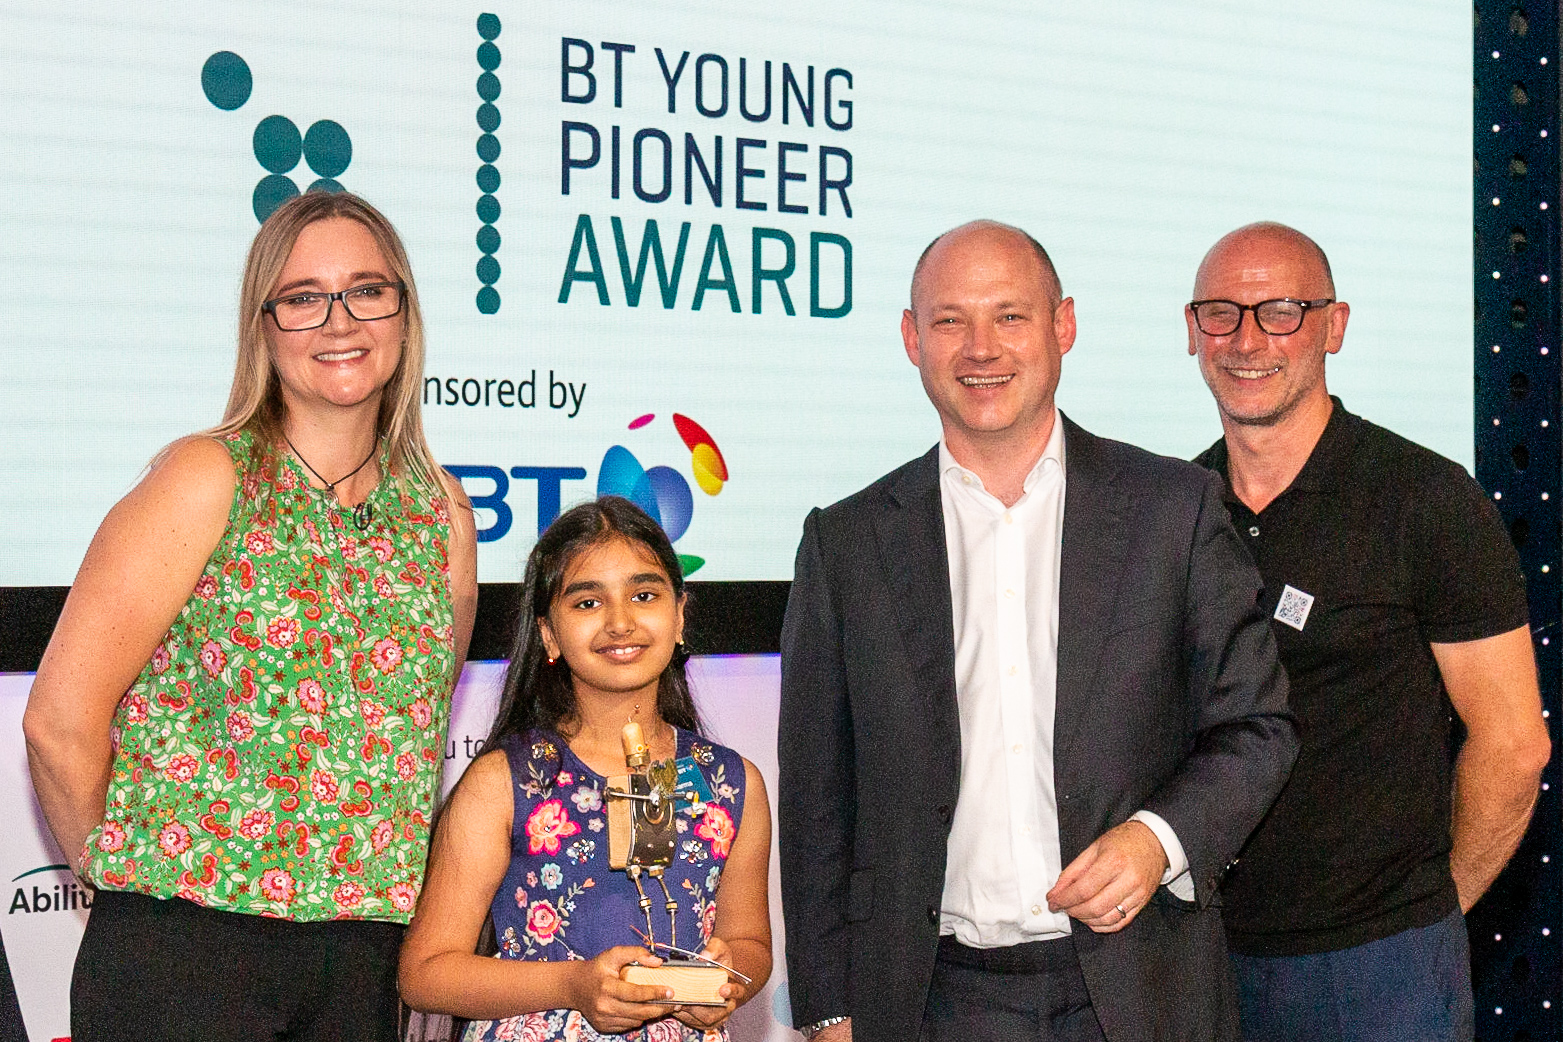 Kate Russell, Mihika Sharma (9), Andy Wales BT and Mark Walker on stage holding the BT Young Pioneer Award